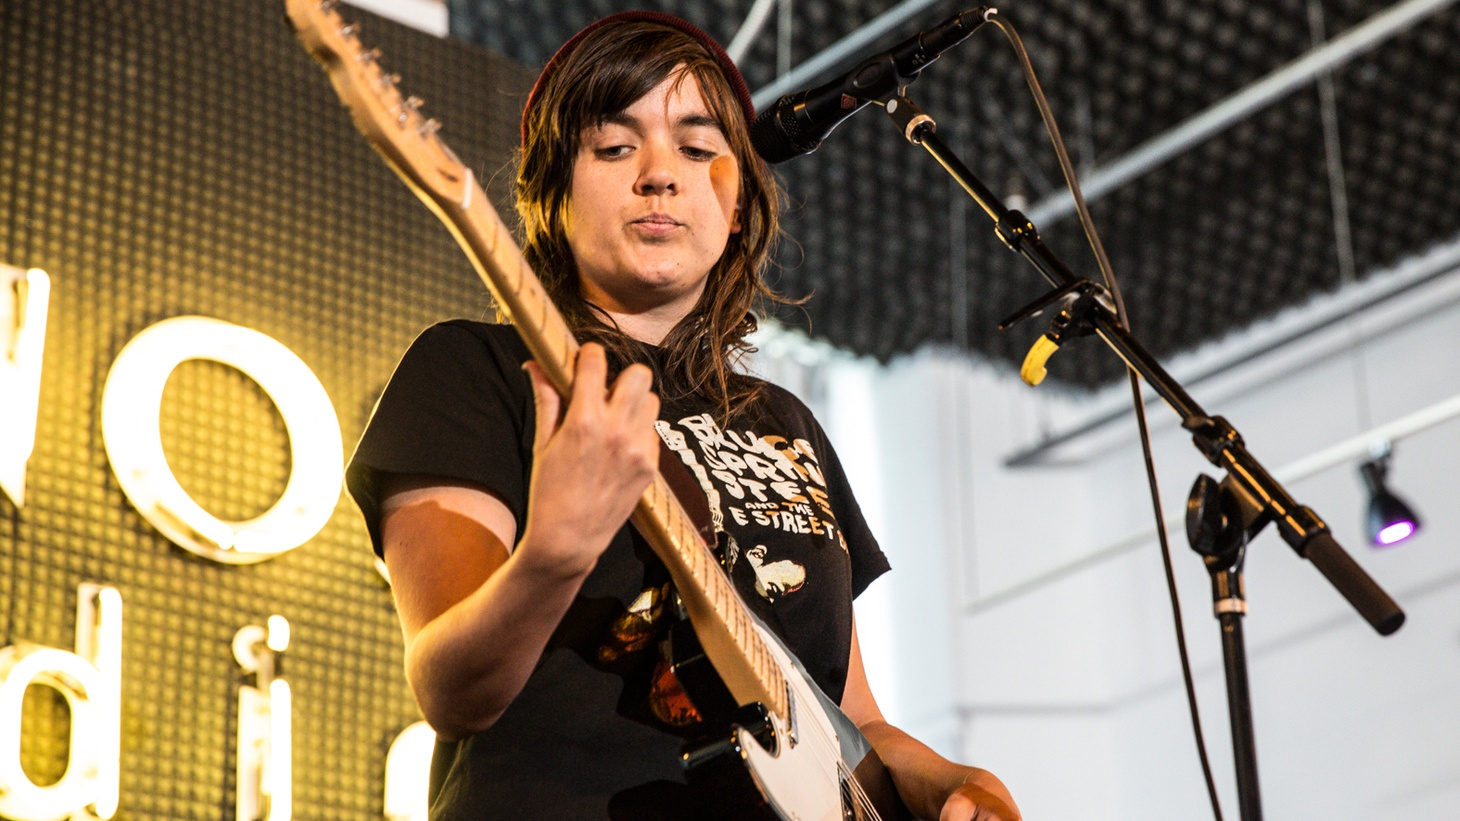 KCRW caught up with critically-acclaimed Australian singer/guitarist Courtney Barnett as she prepared to play one of the biggest shows of her career at the Hollywood Bowl.